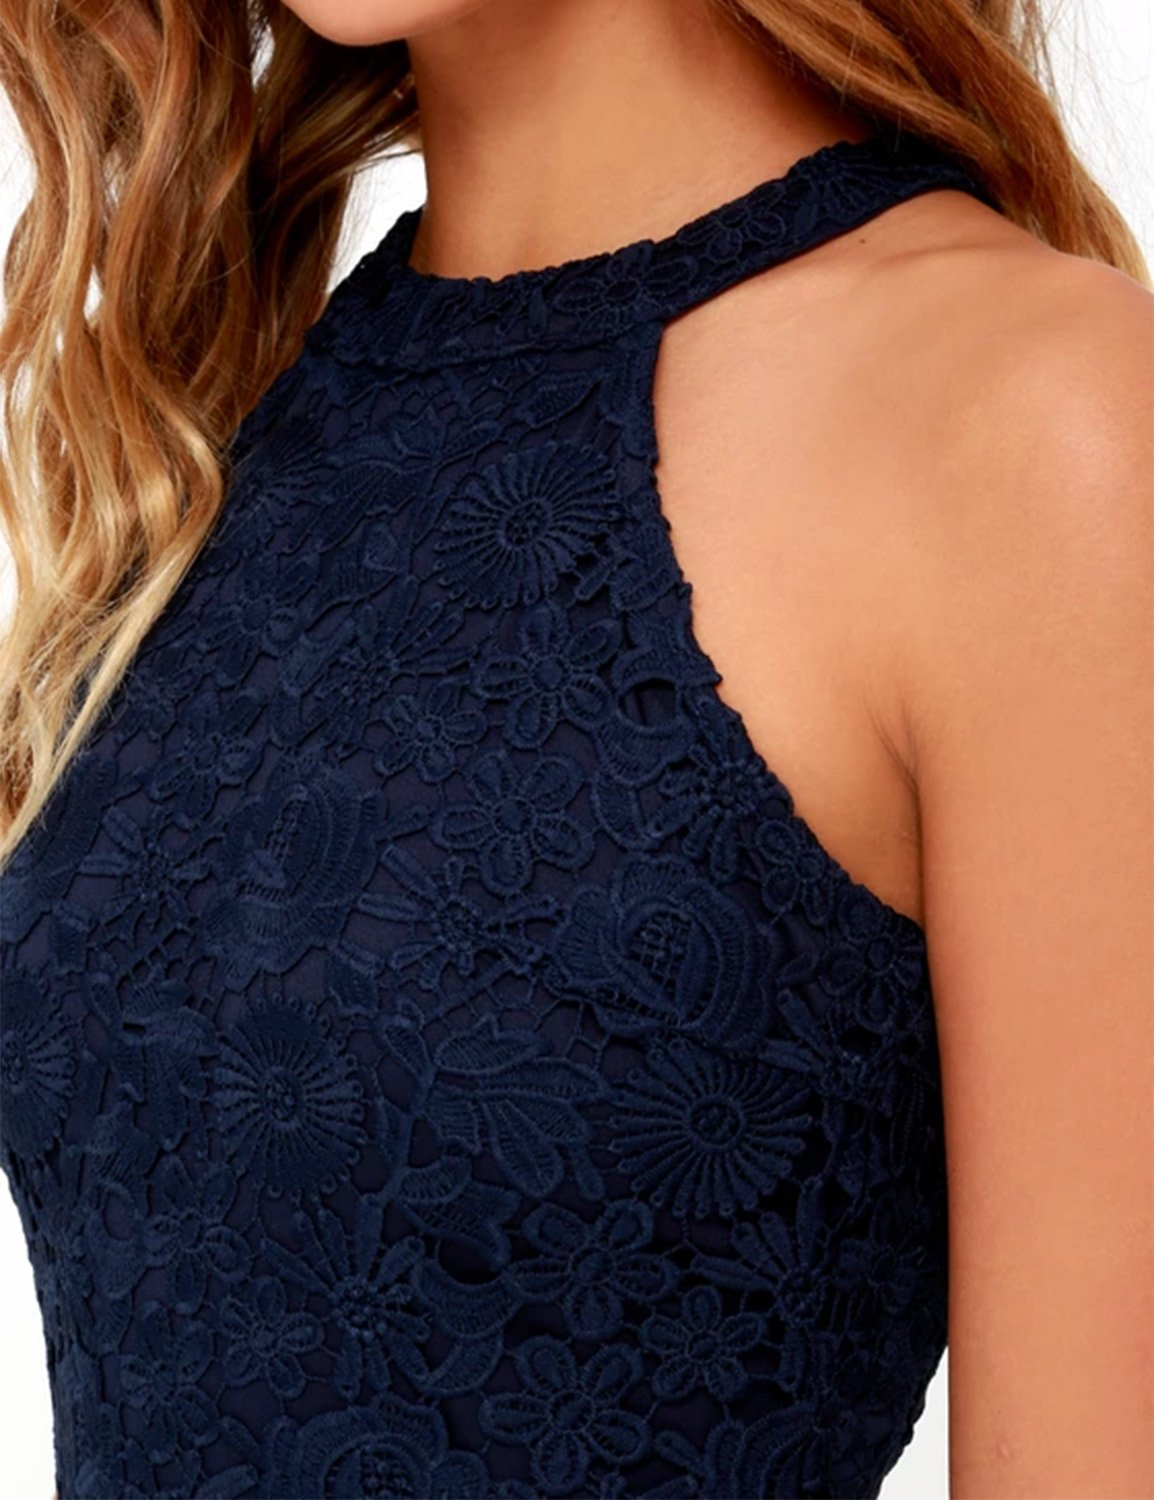 Lamilus Women's Casual Sleeveless Halter Neck Party Lace Mini Dress,Navy Blue,Small by Lamilus (Image #4)